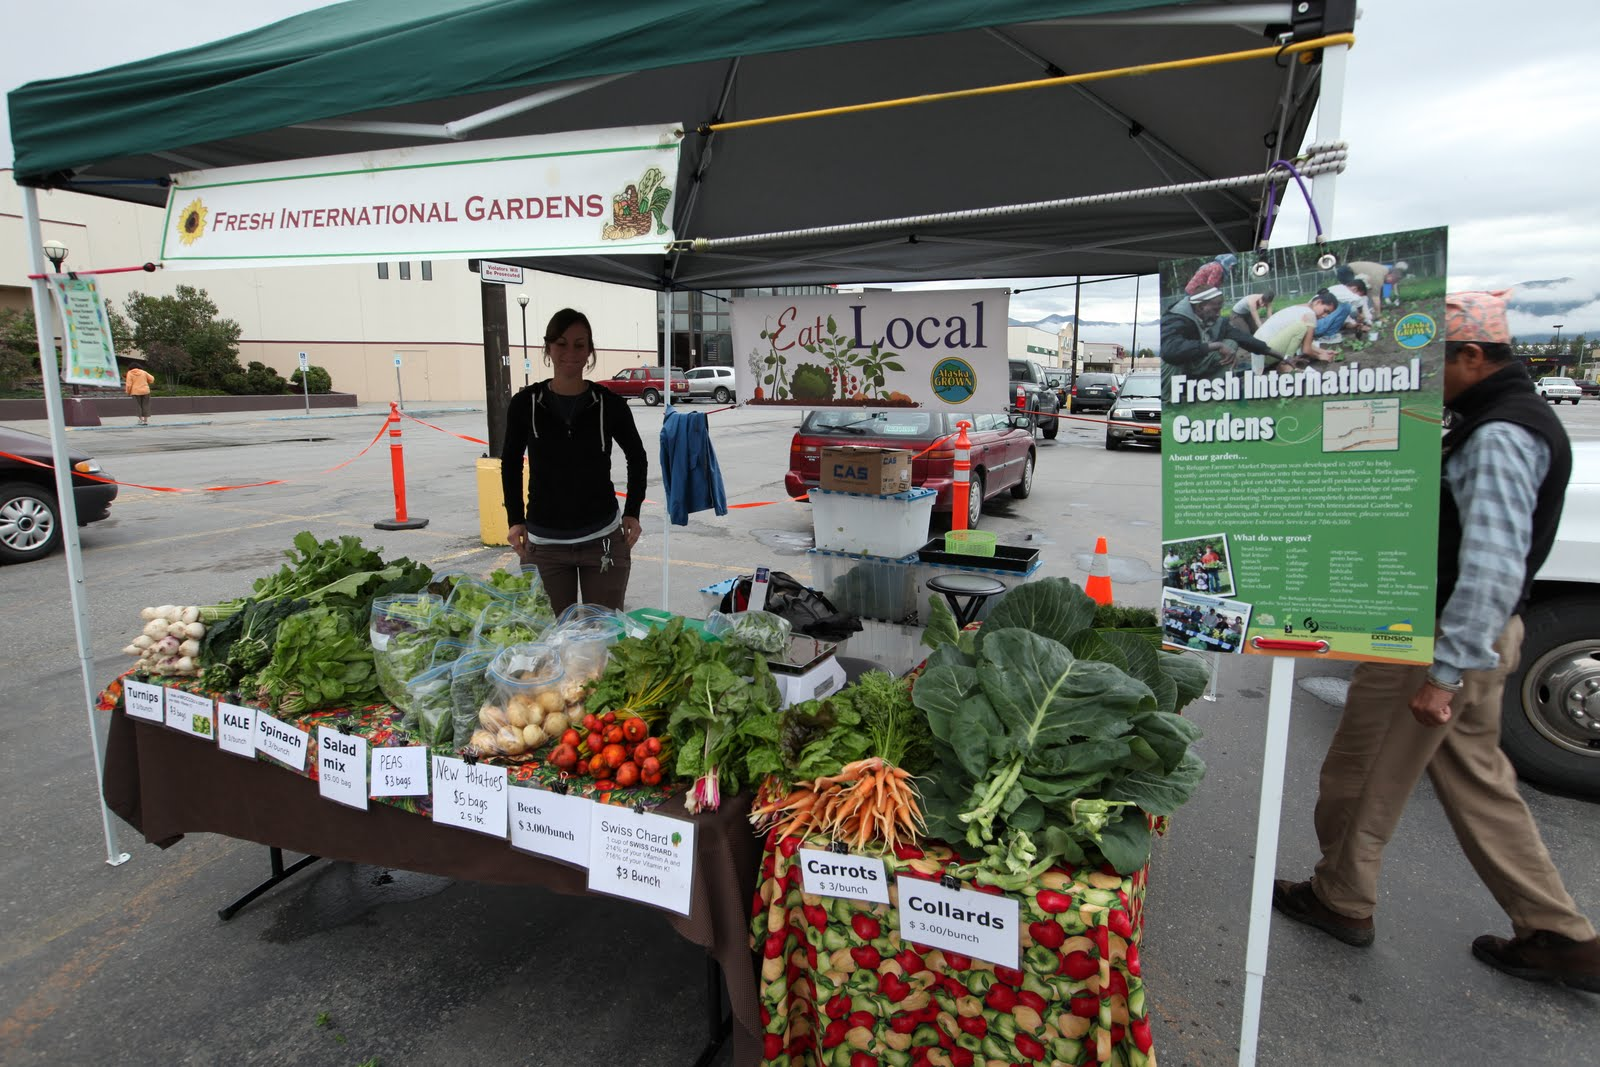 Alaskan Farmers' Markets + Fresh International Gardens ...